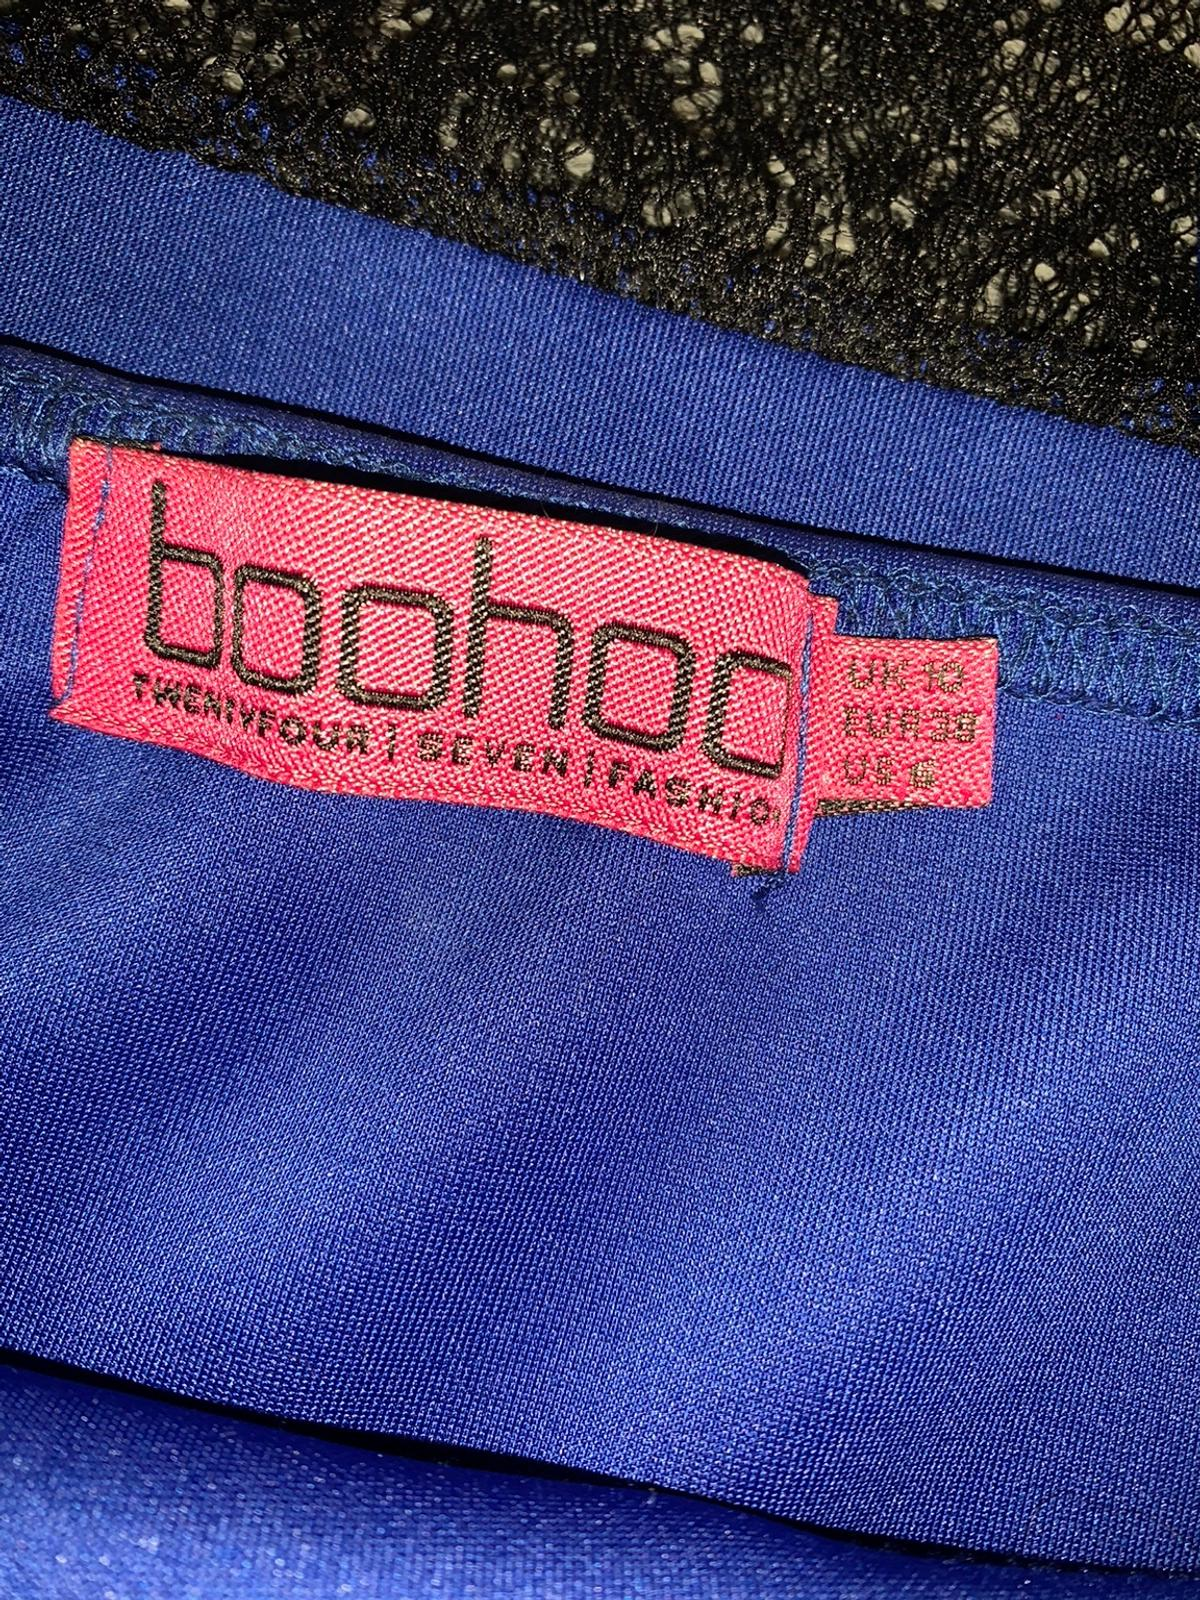 Size 10 boohoo fitted dress warm once